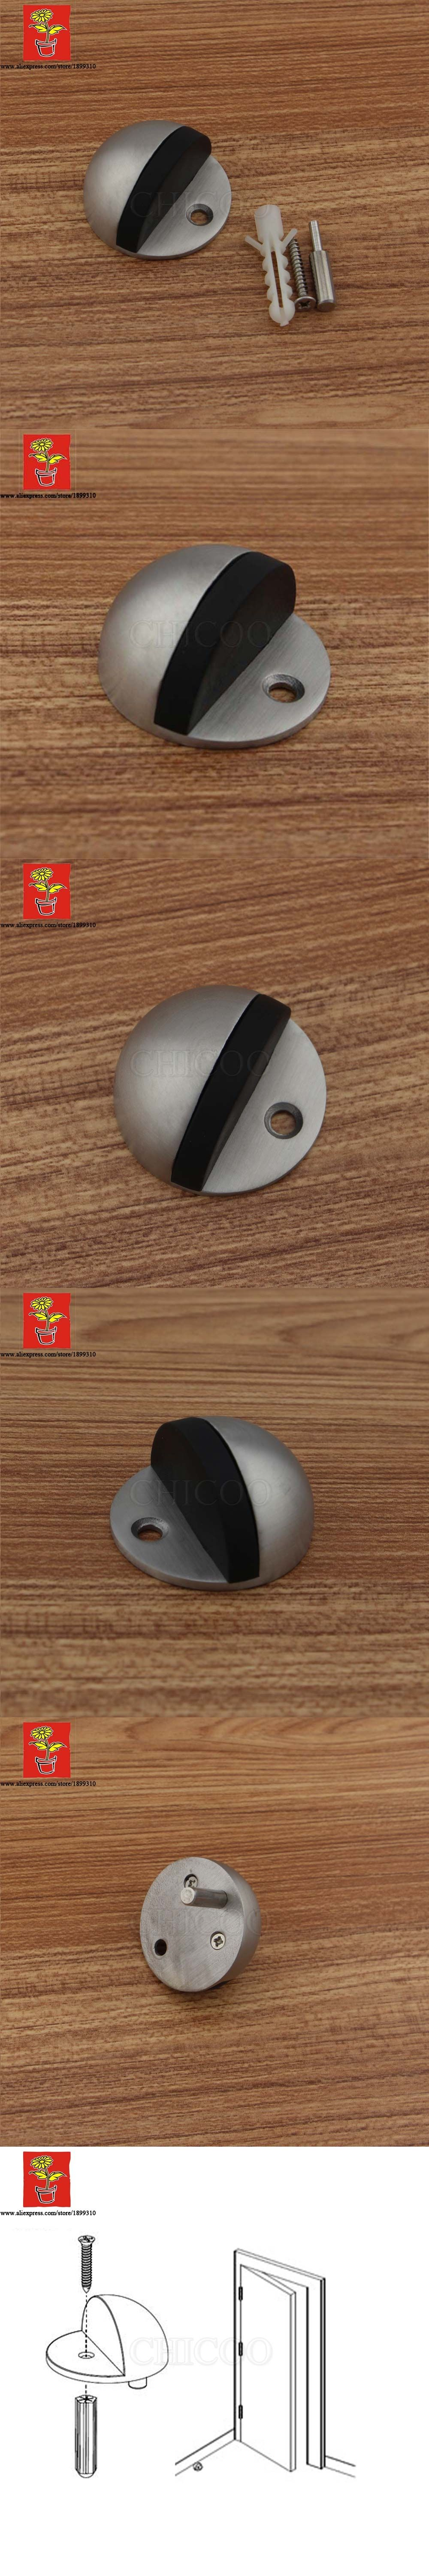 a commercial global rubber design home bonus door security stopper stops concepts slip wedge stop pet decorative company non rockstar with office holders doorstop child floor safety baby